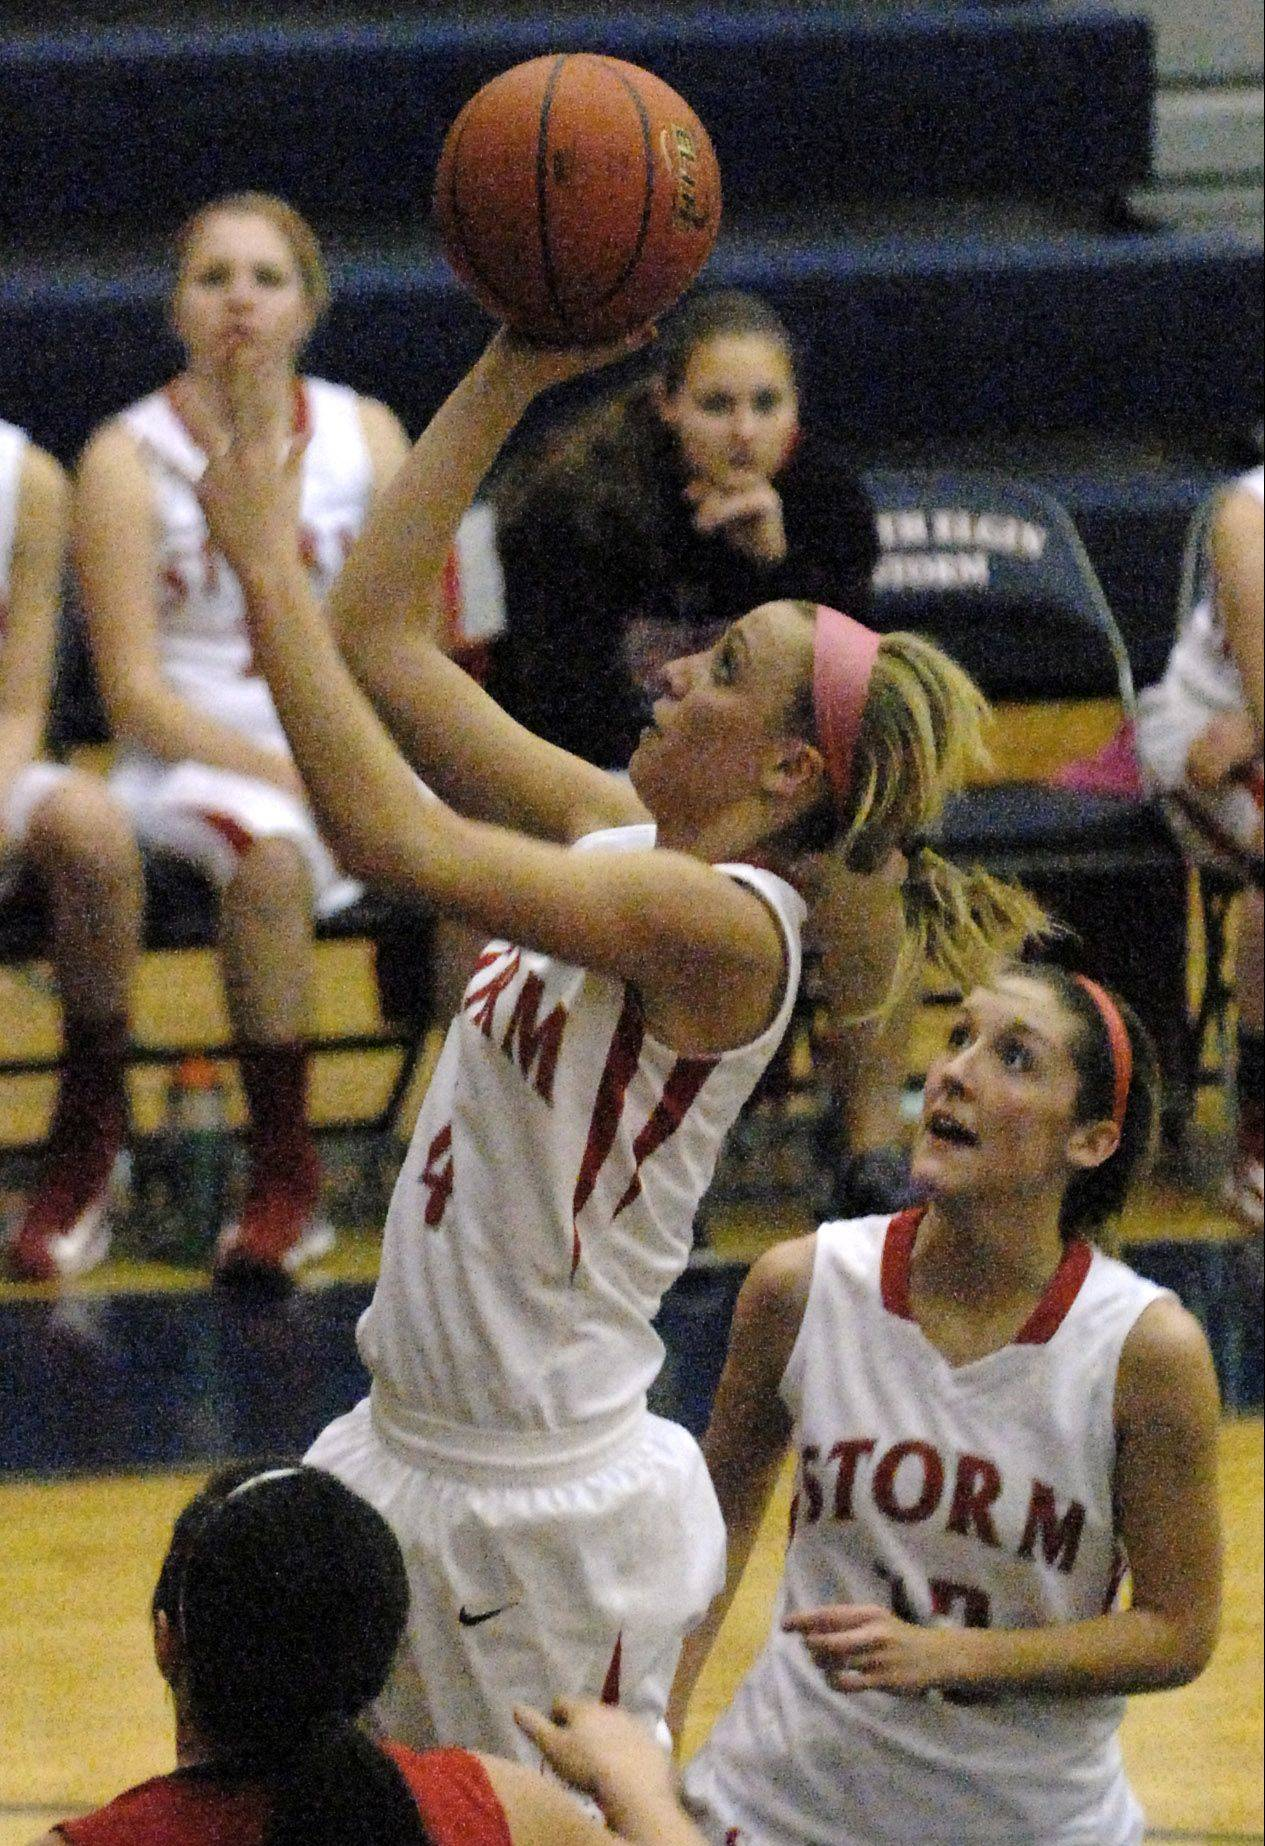 Wentling's 3s lift South Elgin past Batavia